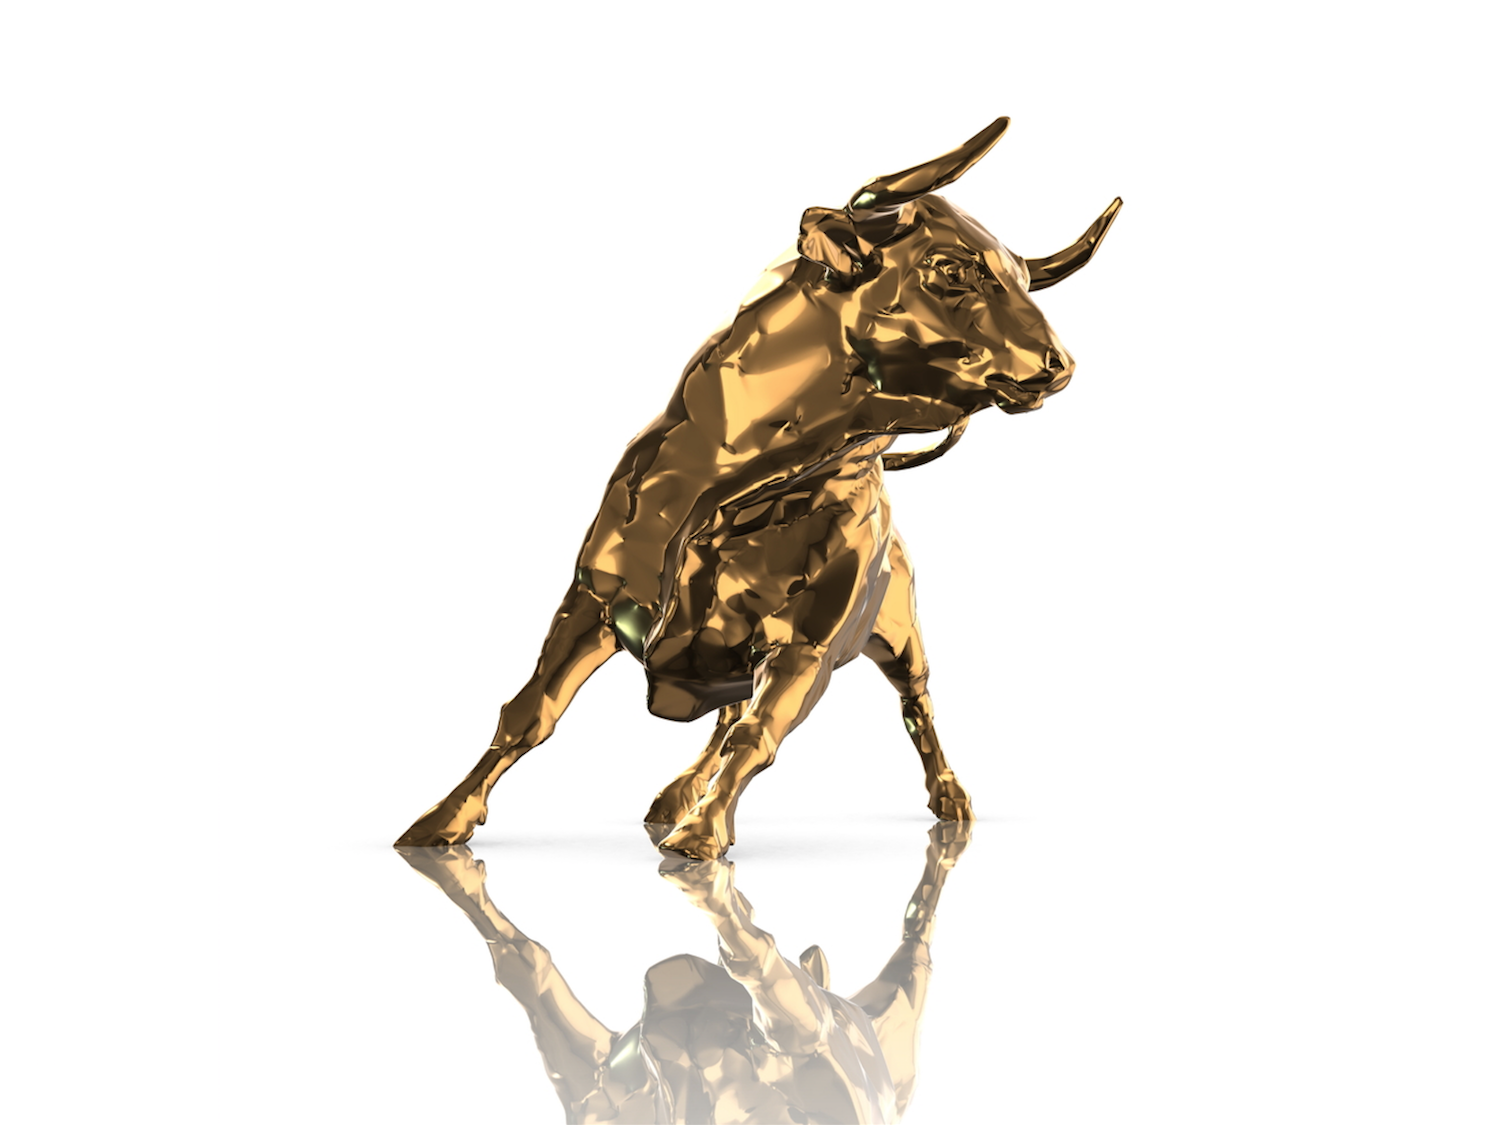 Has last month's gold price bounce lost its shine? (GOLD, GLD)